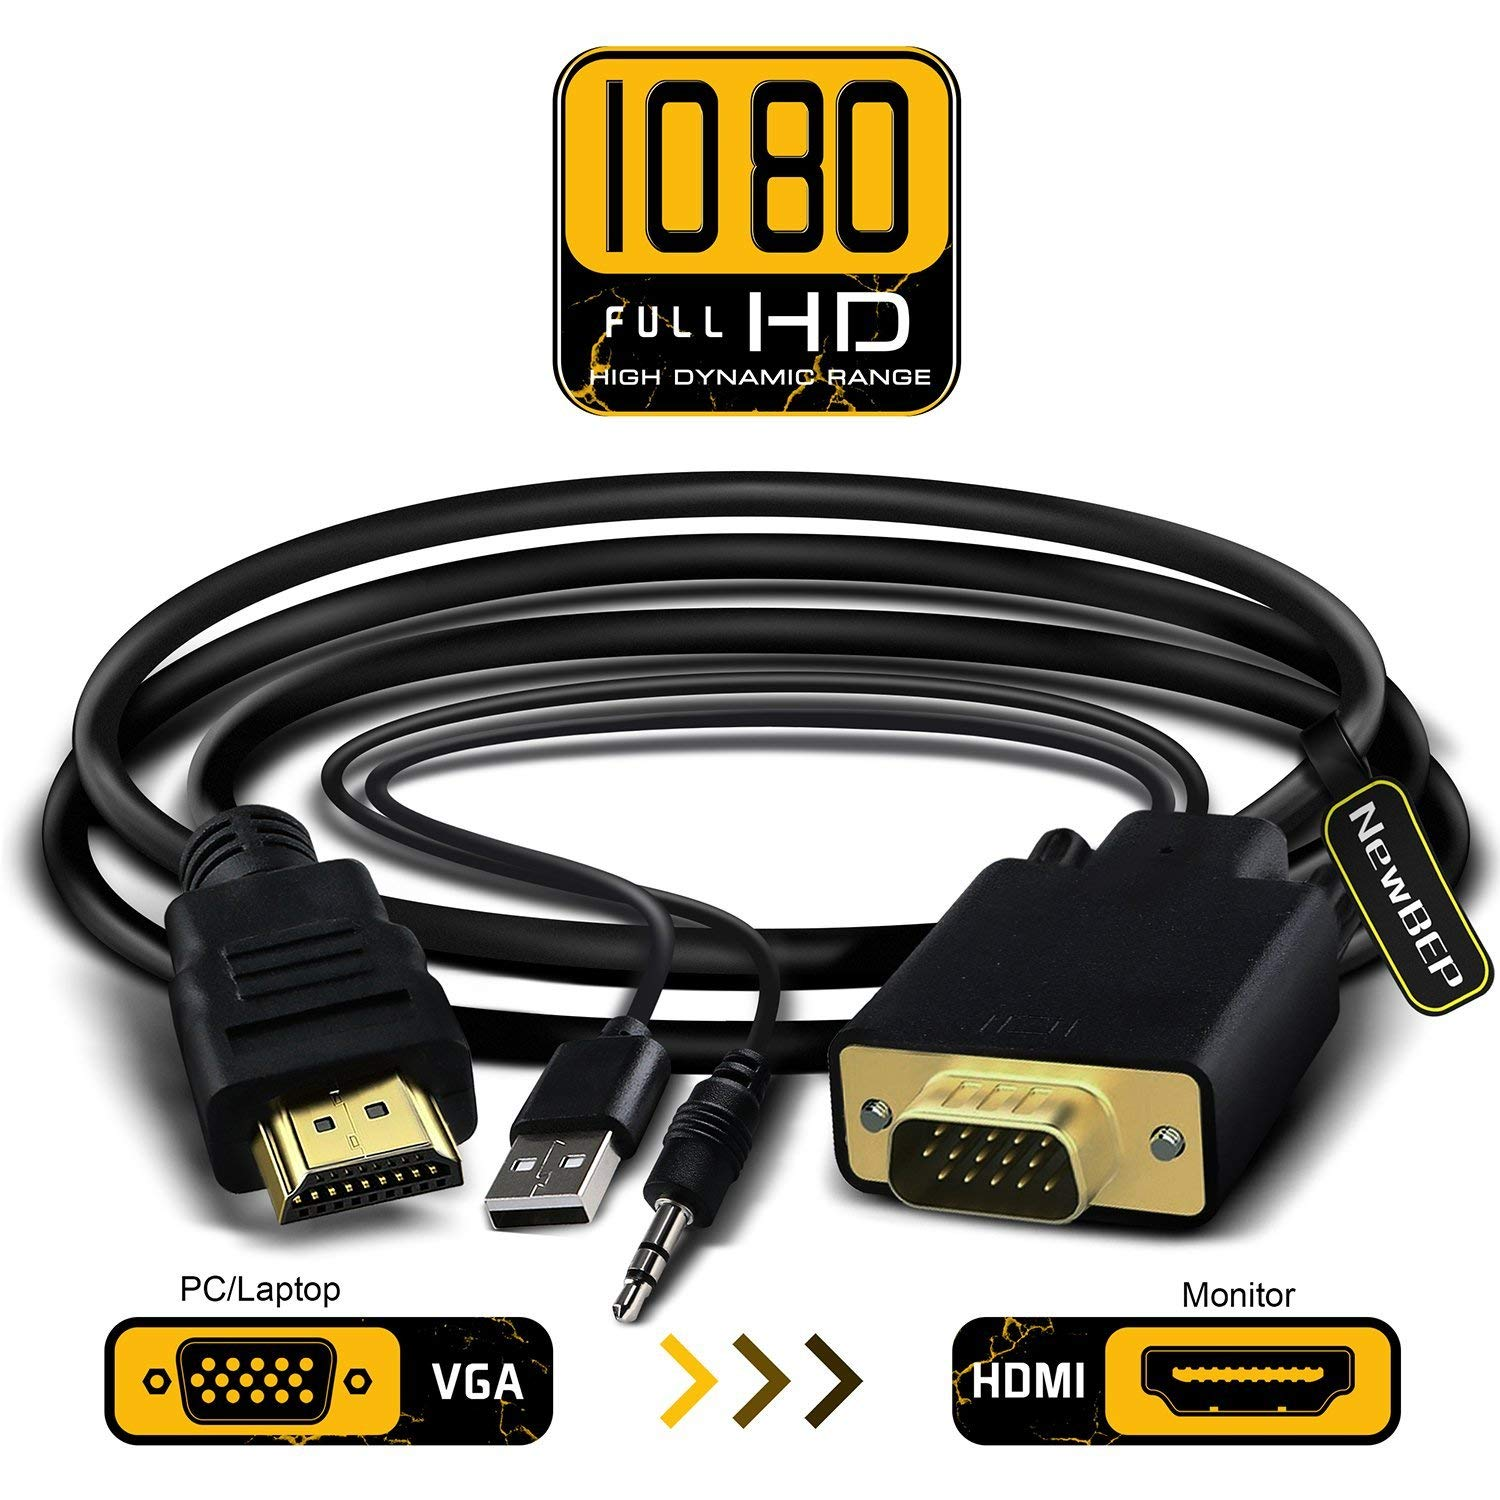 VGA to HDMI Adapter Cable, NewBEP 6Ft/1.8m VGA to HDMI 1080P HD Audio TV AV HDTV Video Converter Cord with 3.5mm Audio Cable & USB Power Cable for PC Computer Desktop Laptop Projector by NewBEP (Image #1)